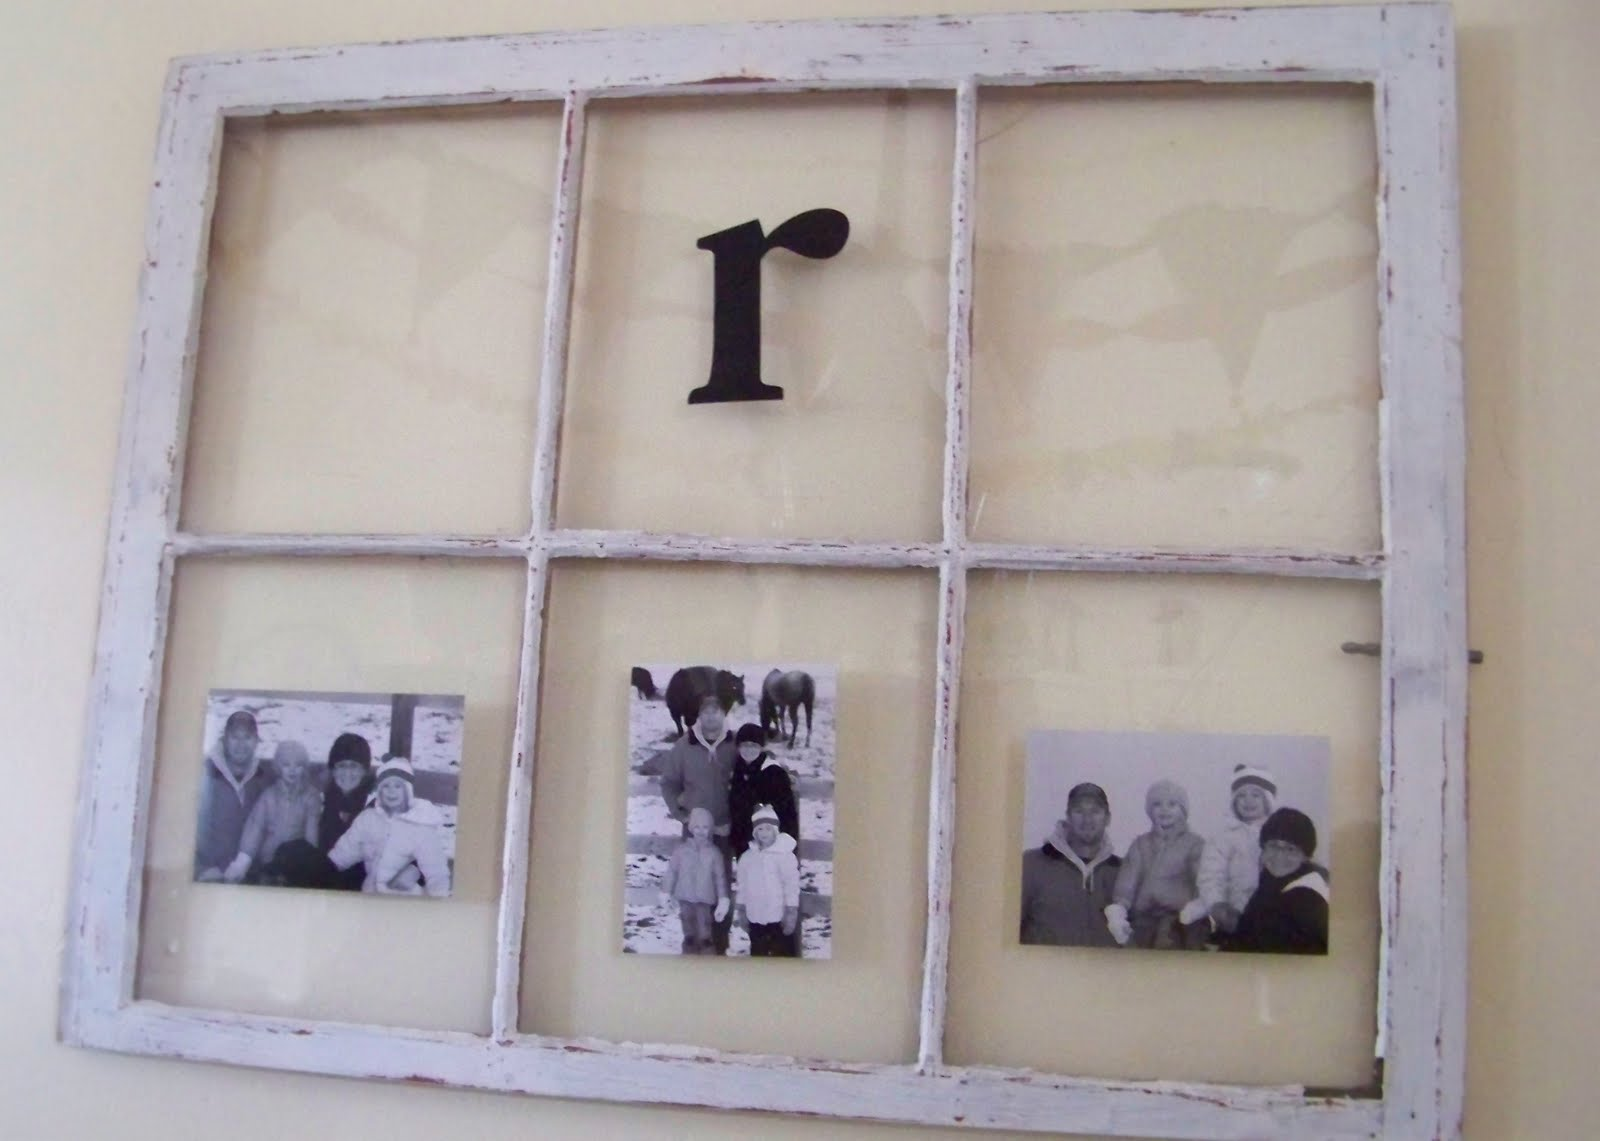 Using old window frames to decorate (she:jami)